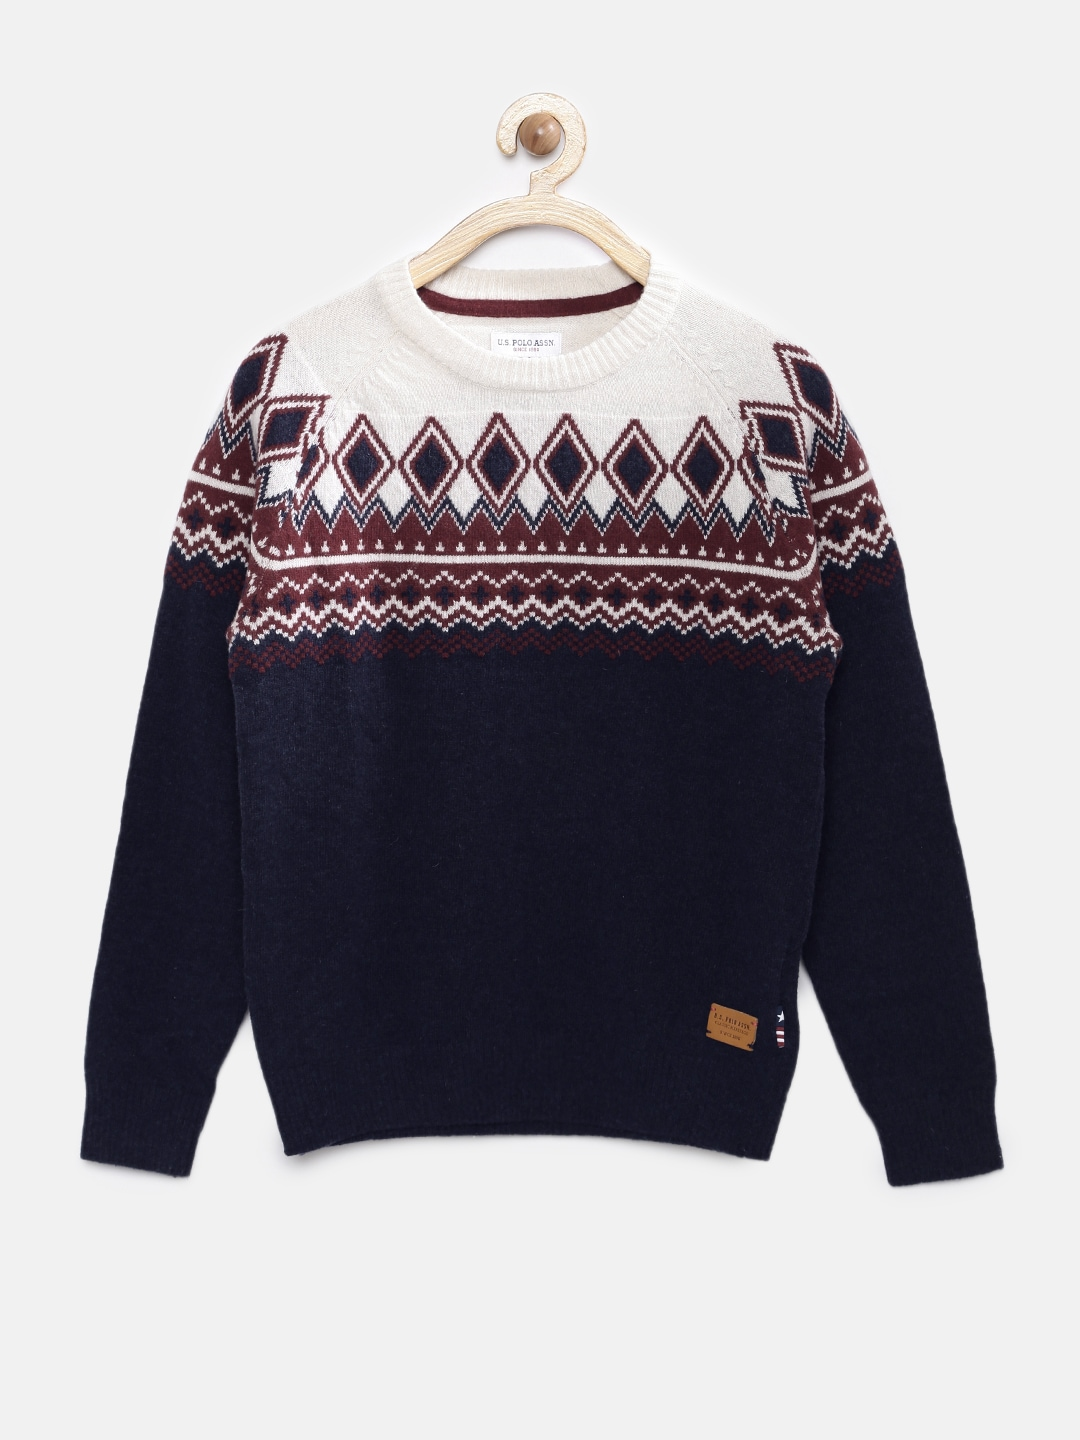 76dcdfe4b626 Us Polo Assn Sweaters - Buy Us Polo Assn Sweaters online in India